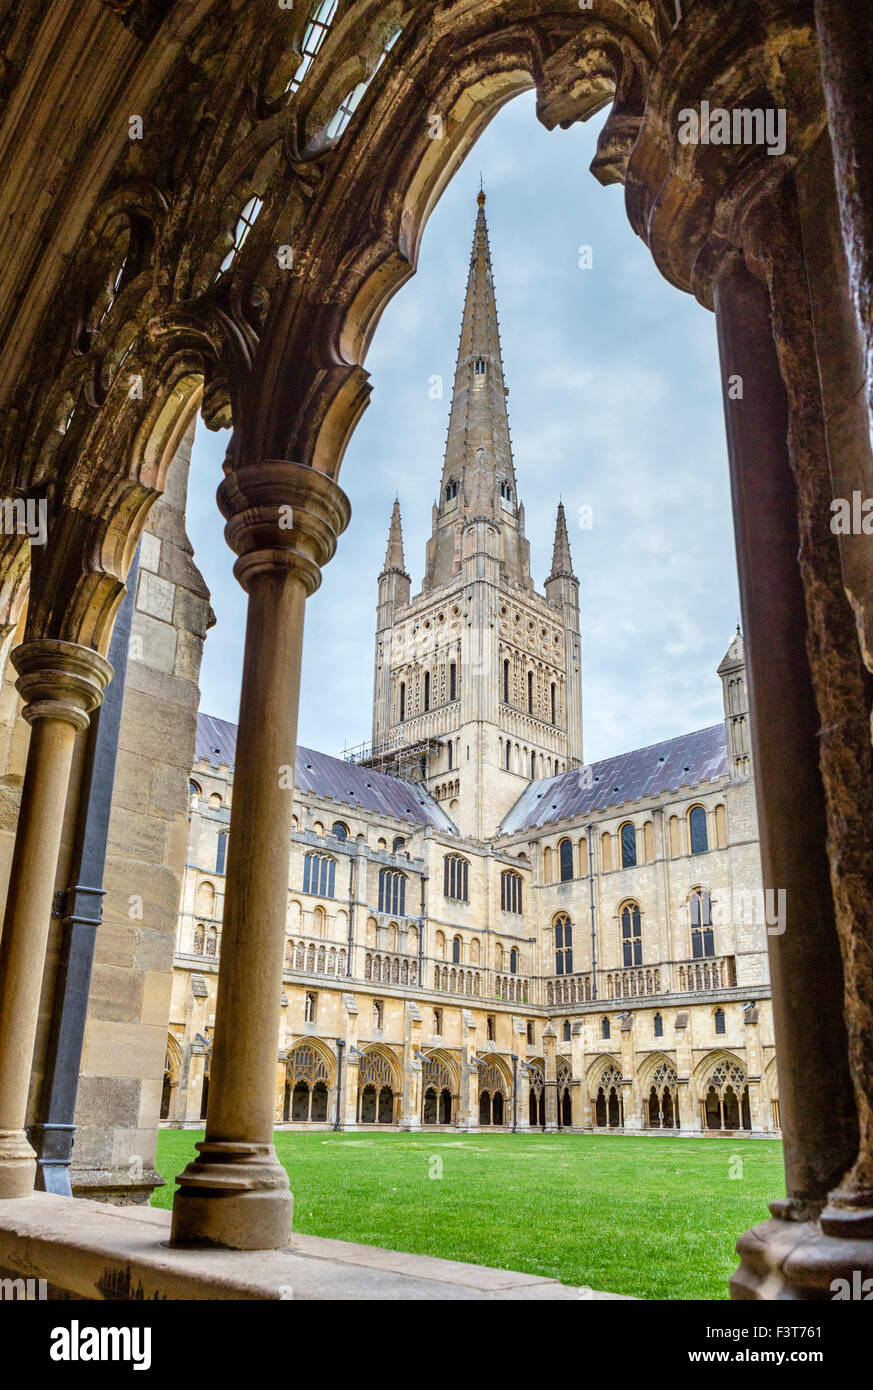 The cathedral spire from the cloisters, Norwich Cathedral, Norwich, Norfolk, England, UK - Stock Image